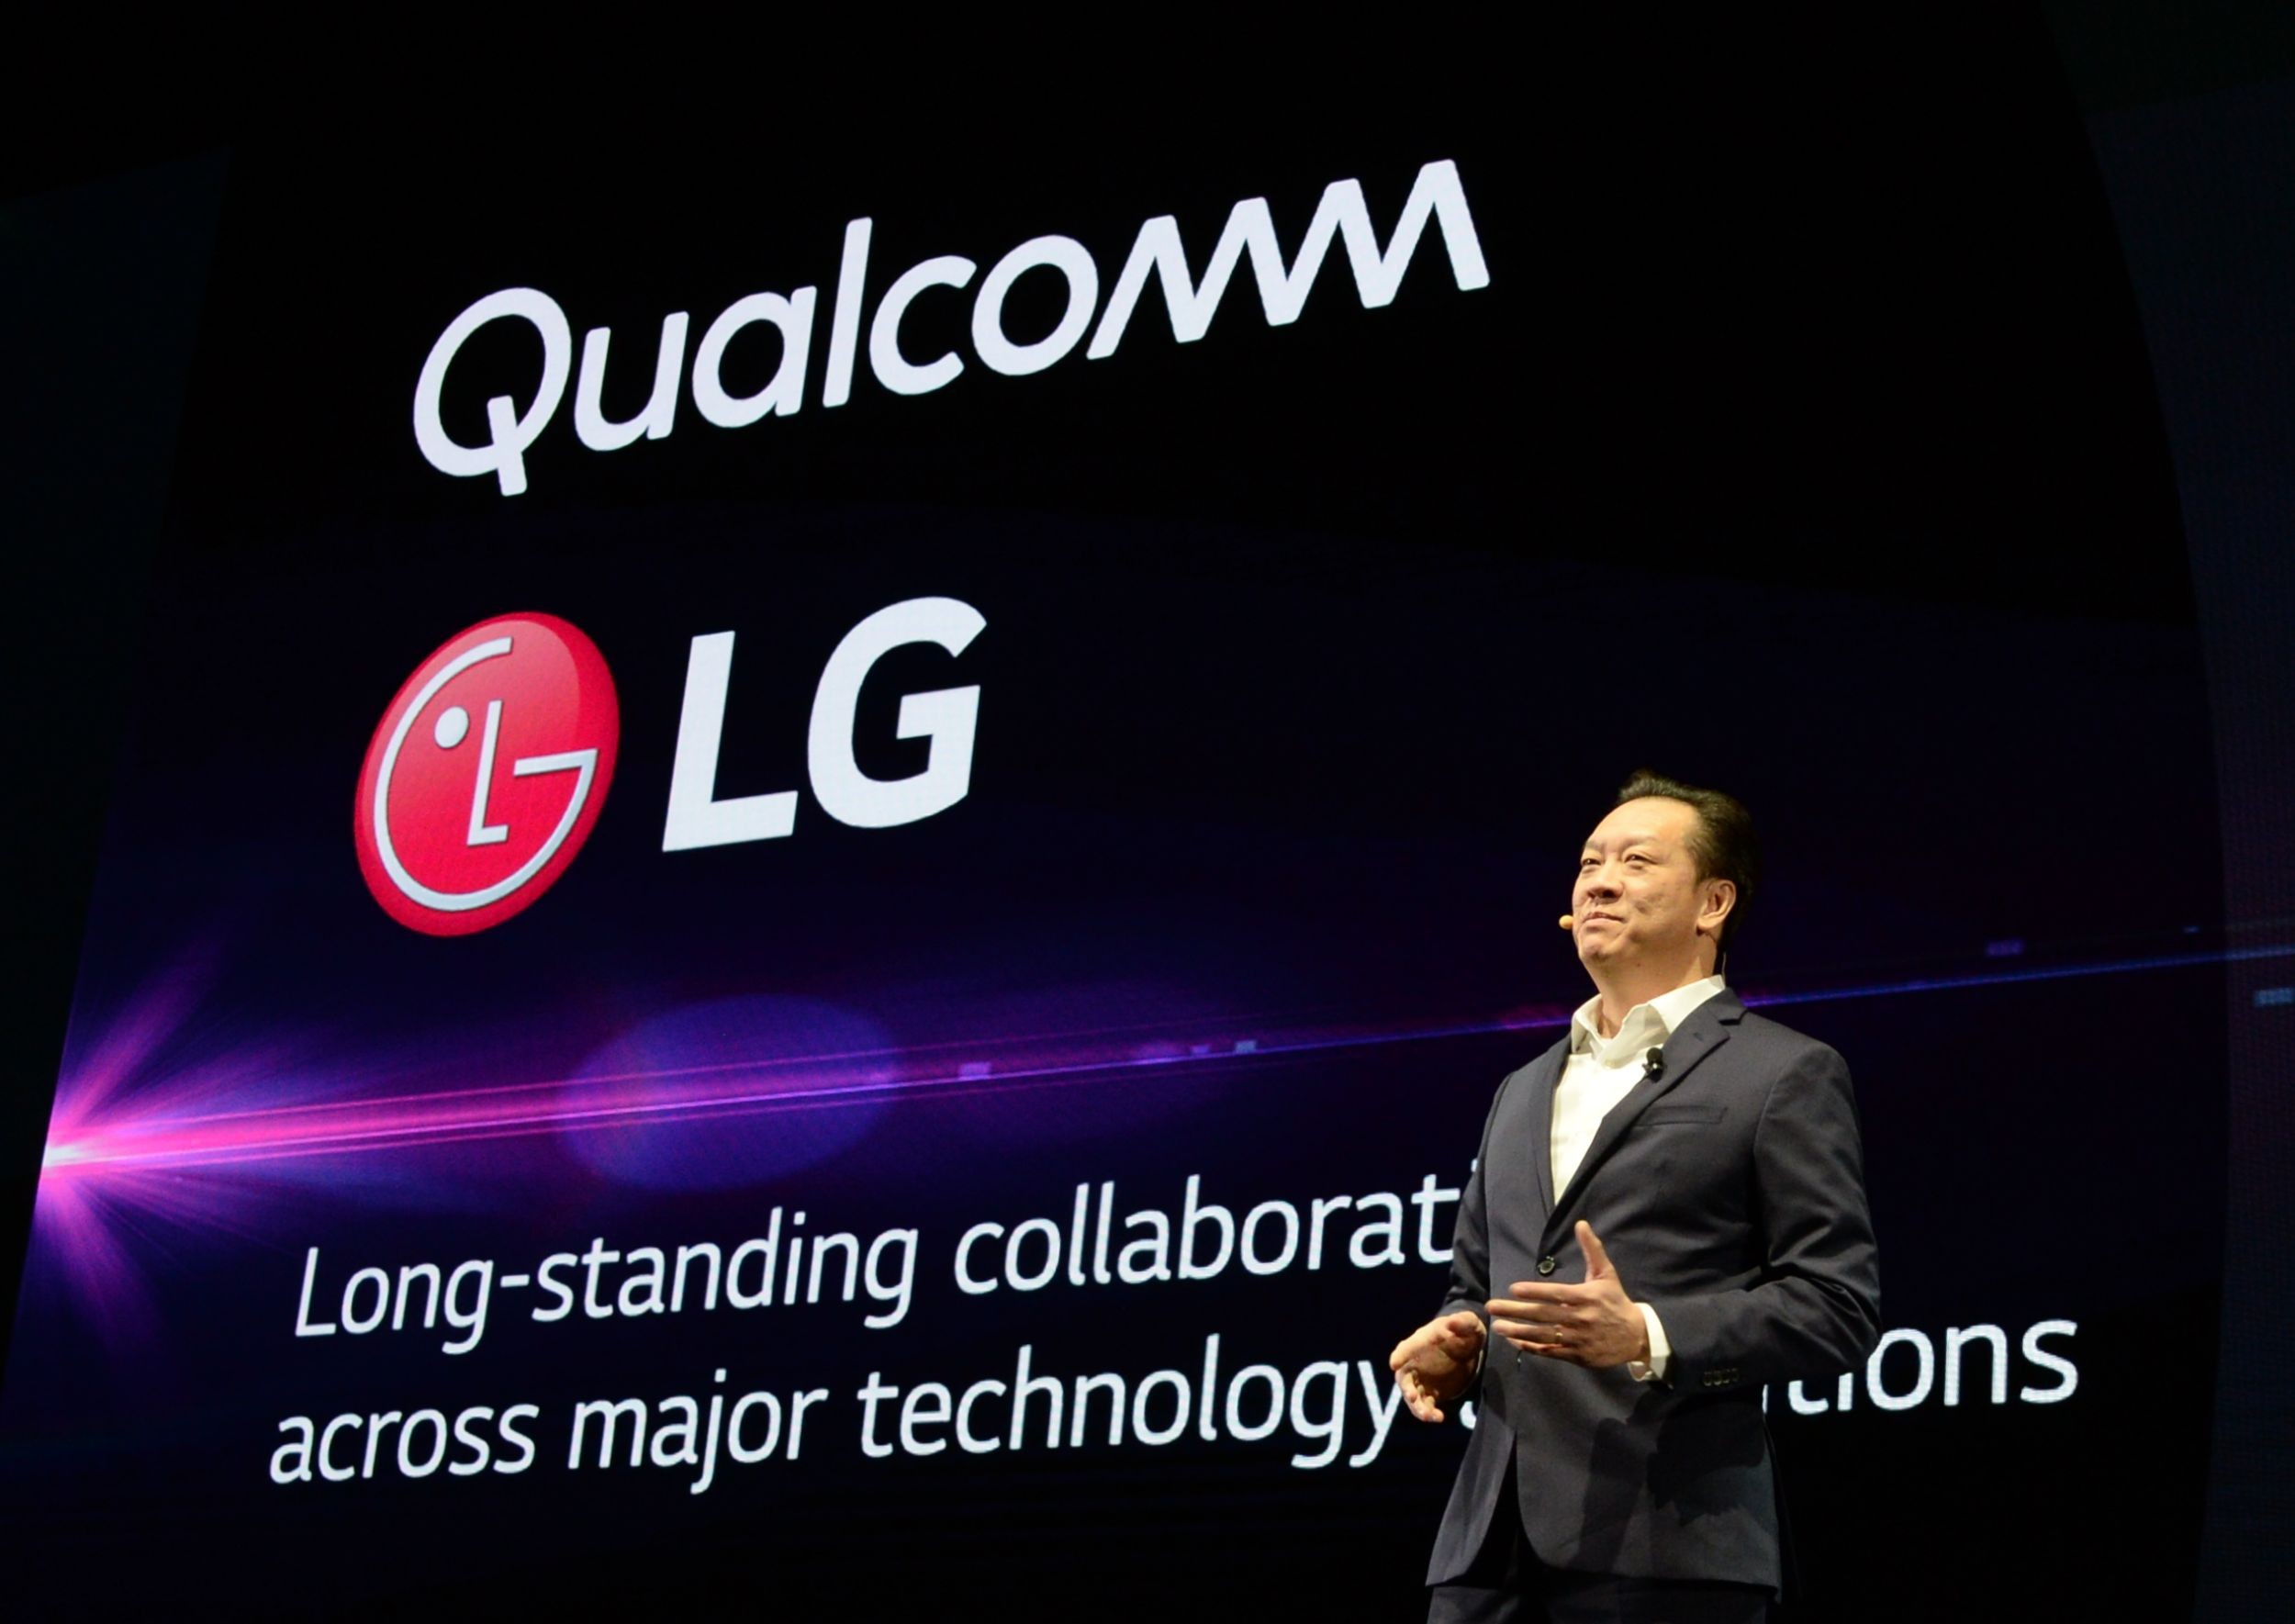 David VanderWall, Senior Vice President of Marketing at LG Electronics USA and Tim Alessi Senior Director of Product Marketing for Home Entertainment Products at LG Electronics USA are onstage demonstrate the half-rolled display position of the LG SIGNATURE OLED TV R at LG's CES 2019 Press Conference while putting the TV between them.